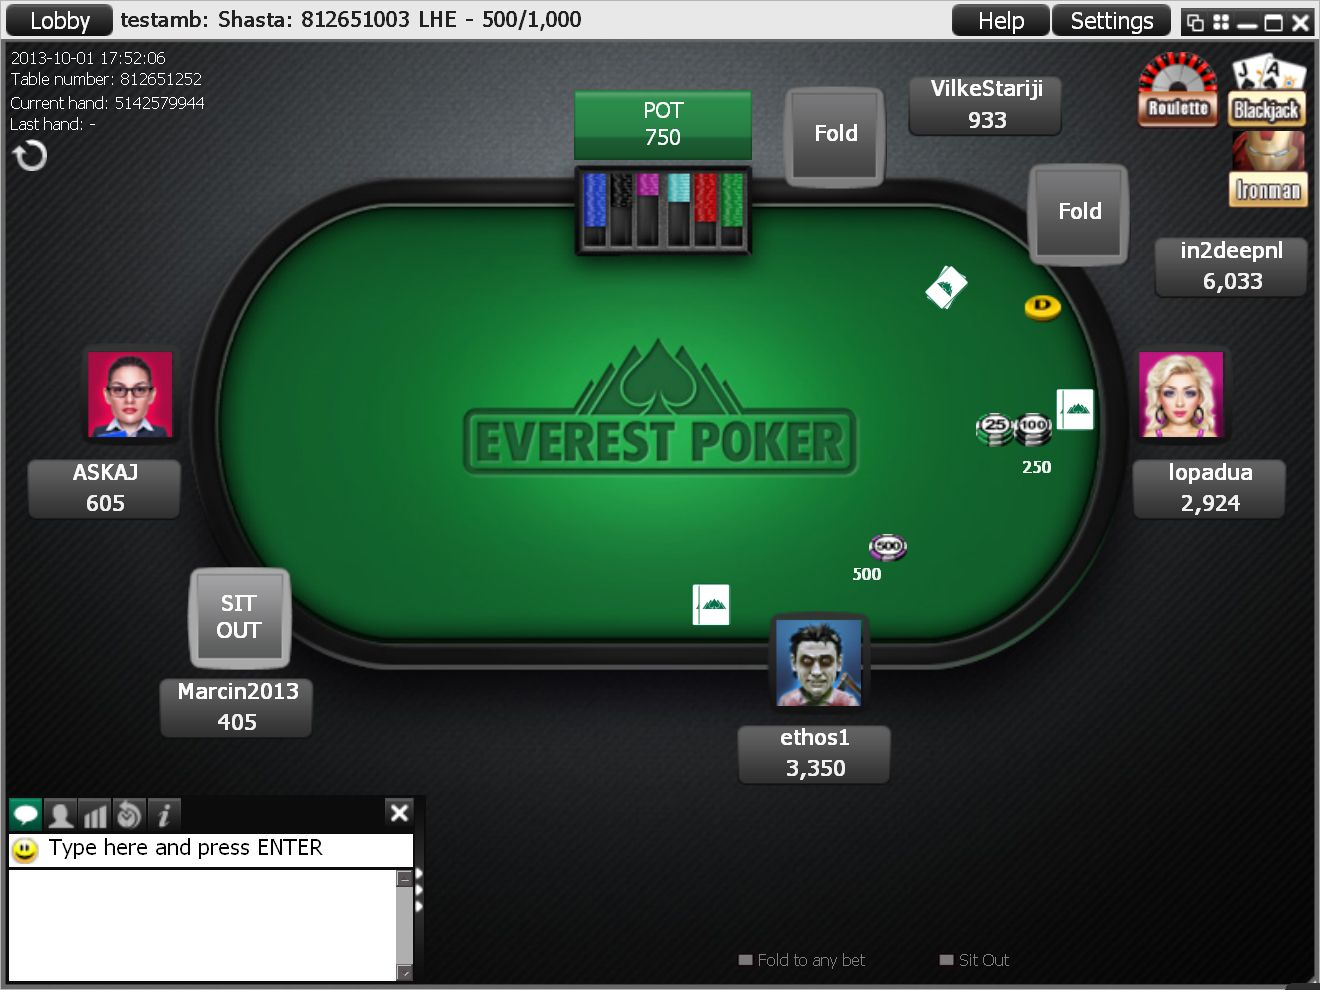 everest poker tools